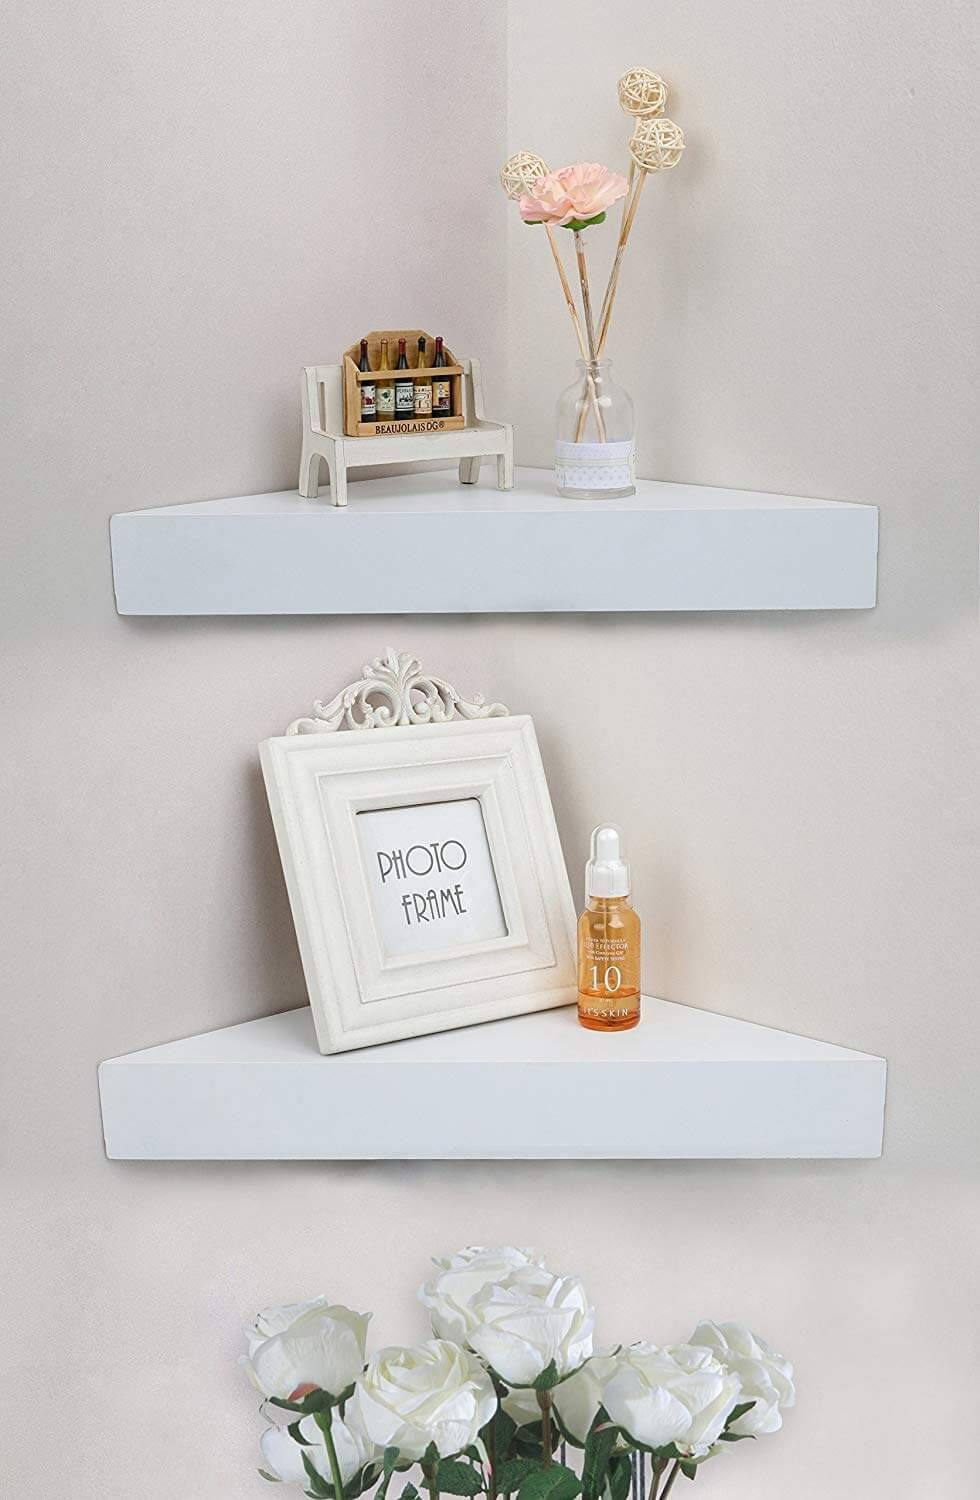 26 Amazing Corner Shelf Ideas That Will Maximize The Space In Your Rooms Shelves In Bedroom Corner Shelves White Floating Corner Shelves